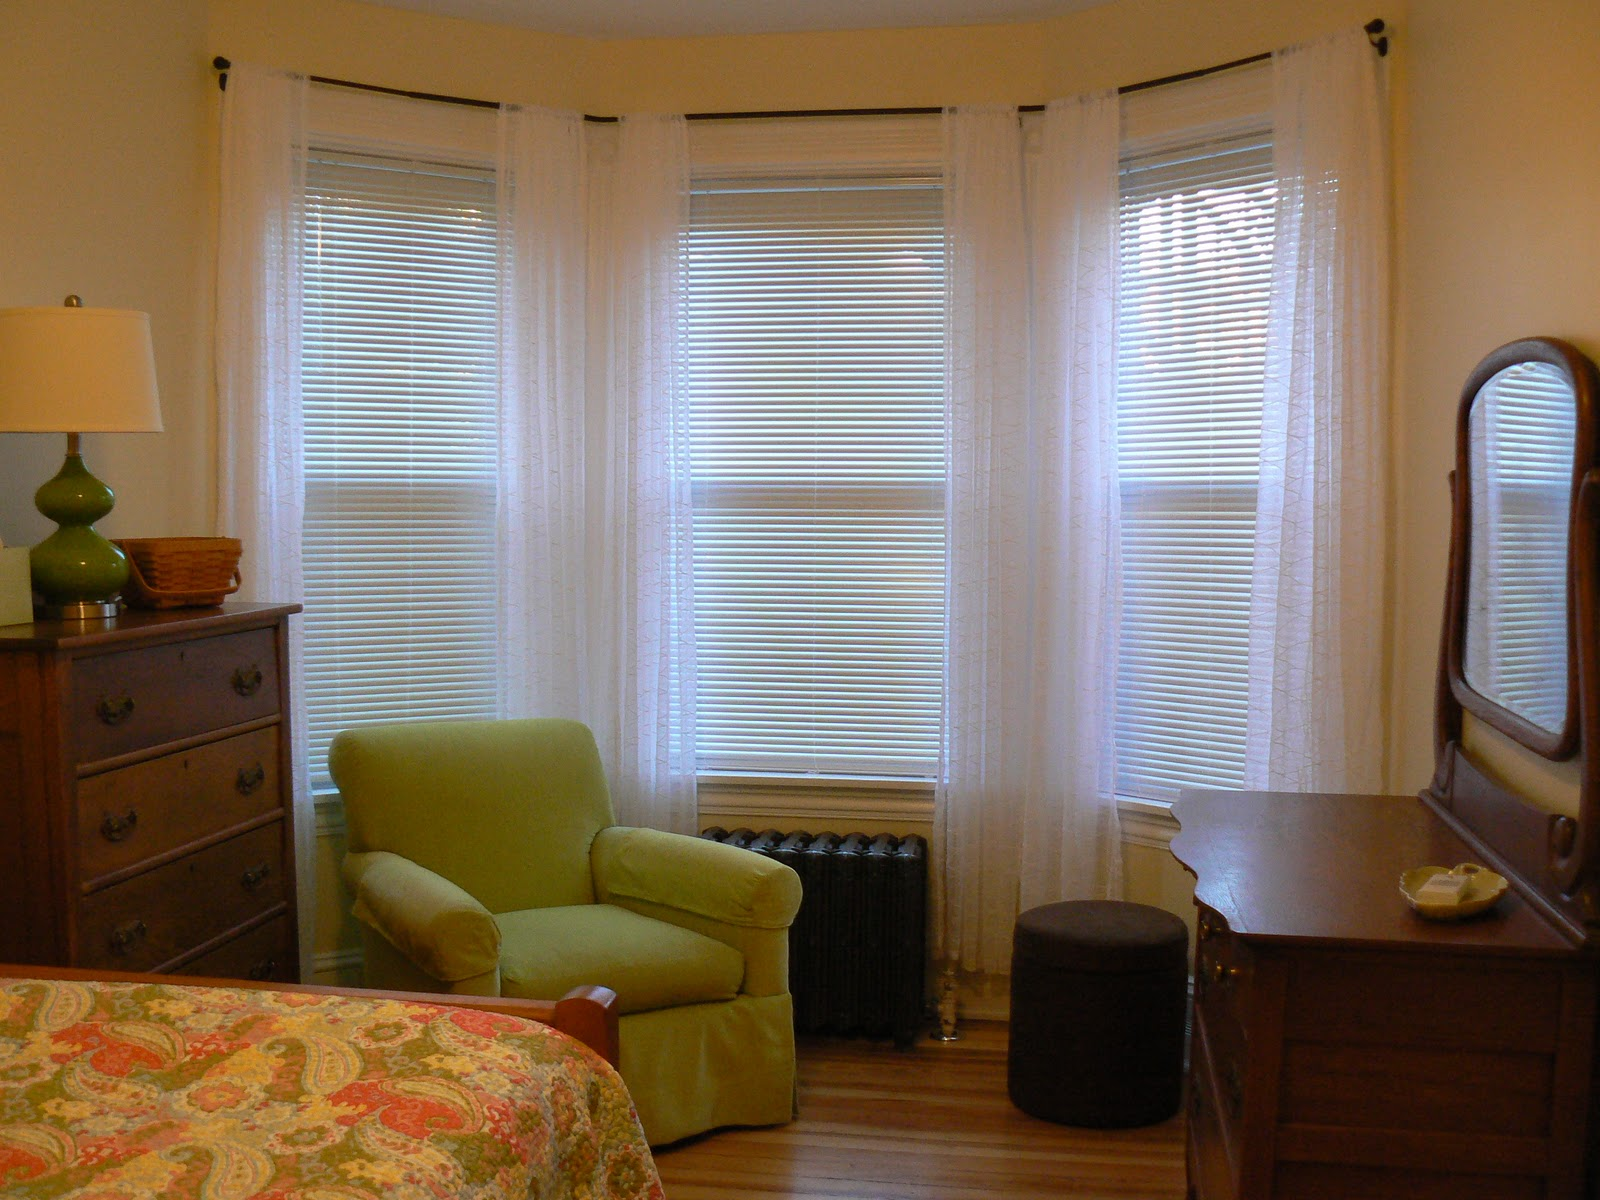 Bay Window Curtains : Caring for the house keys